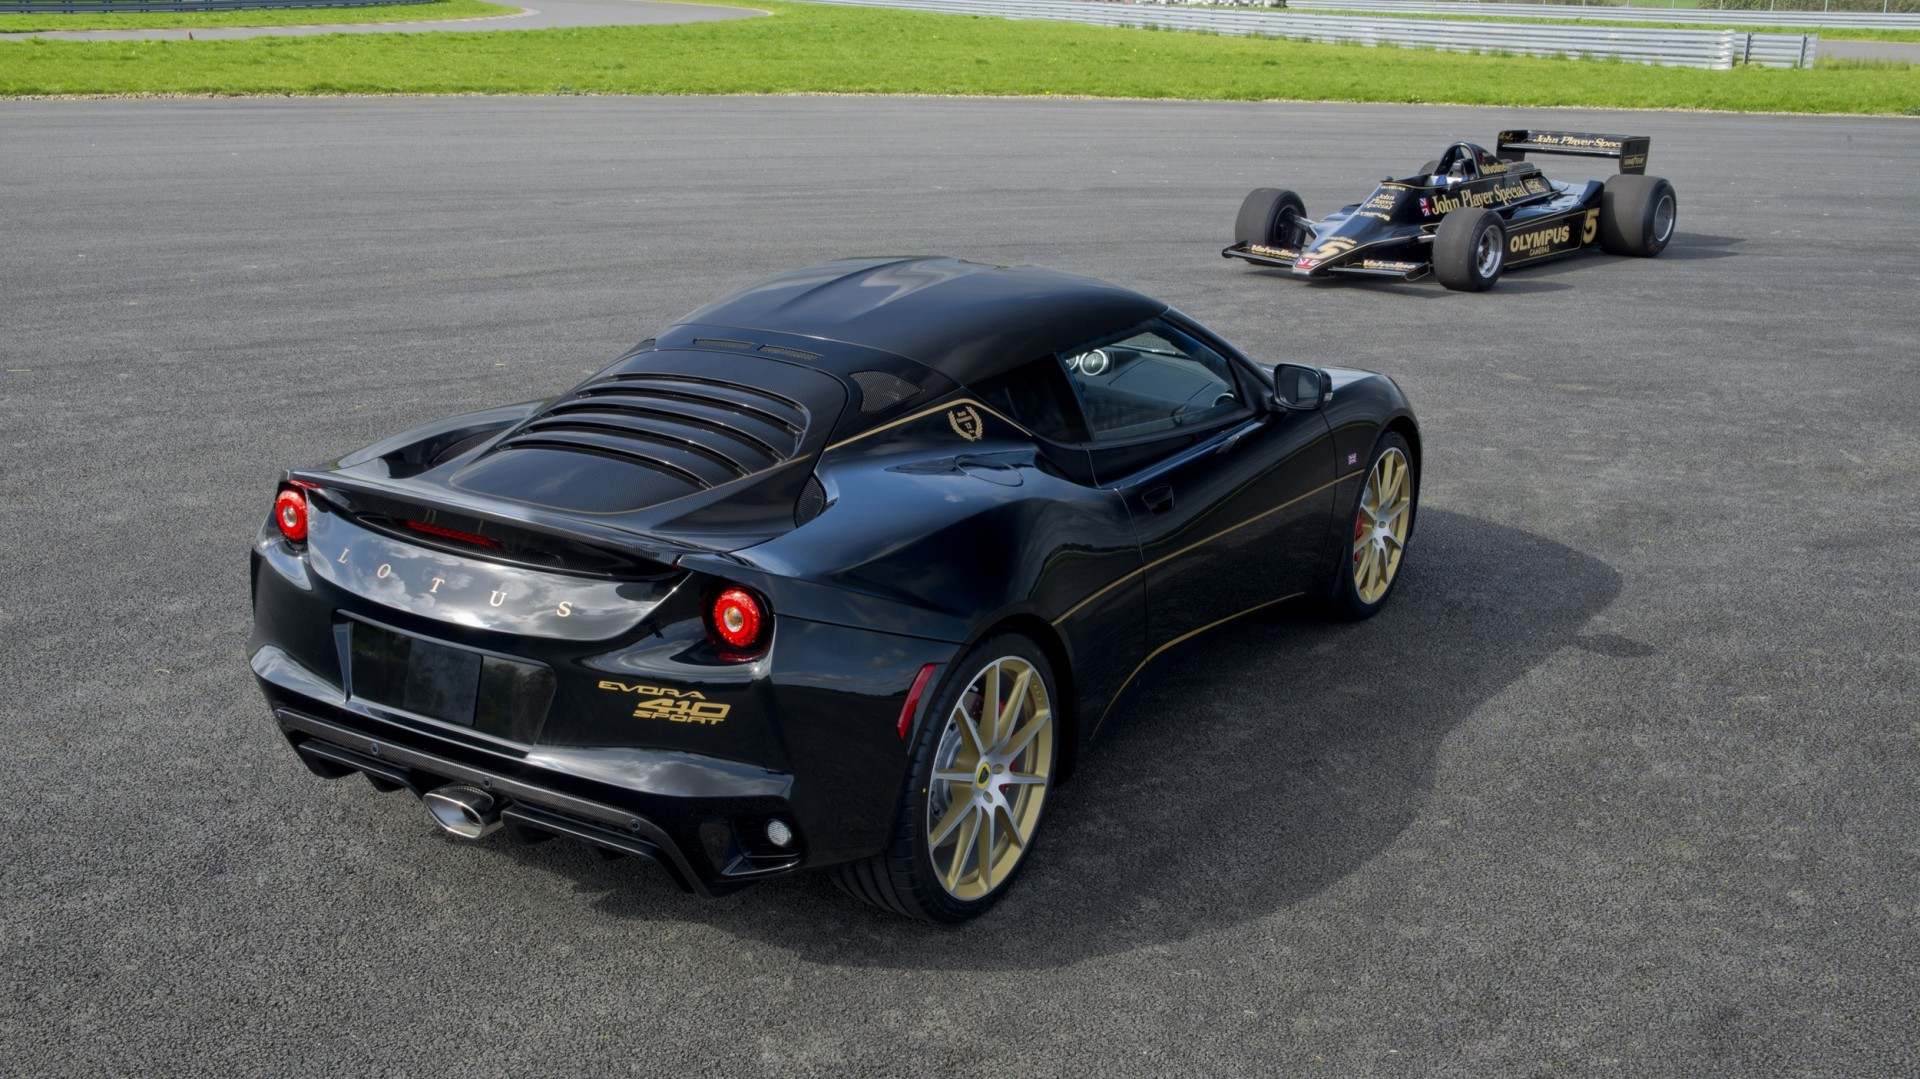 Lotus Evora Sport 410 GP Edition 2